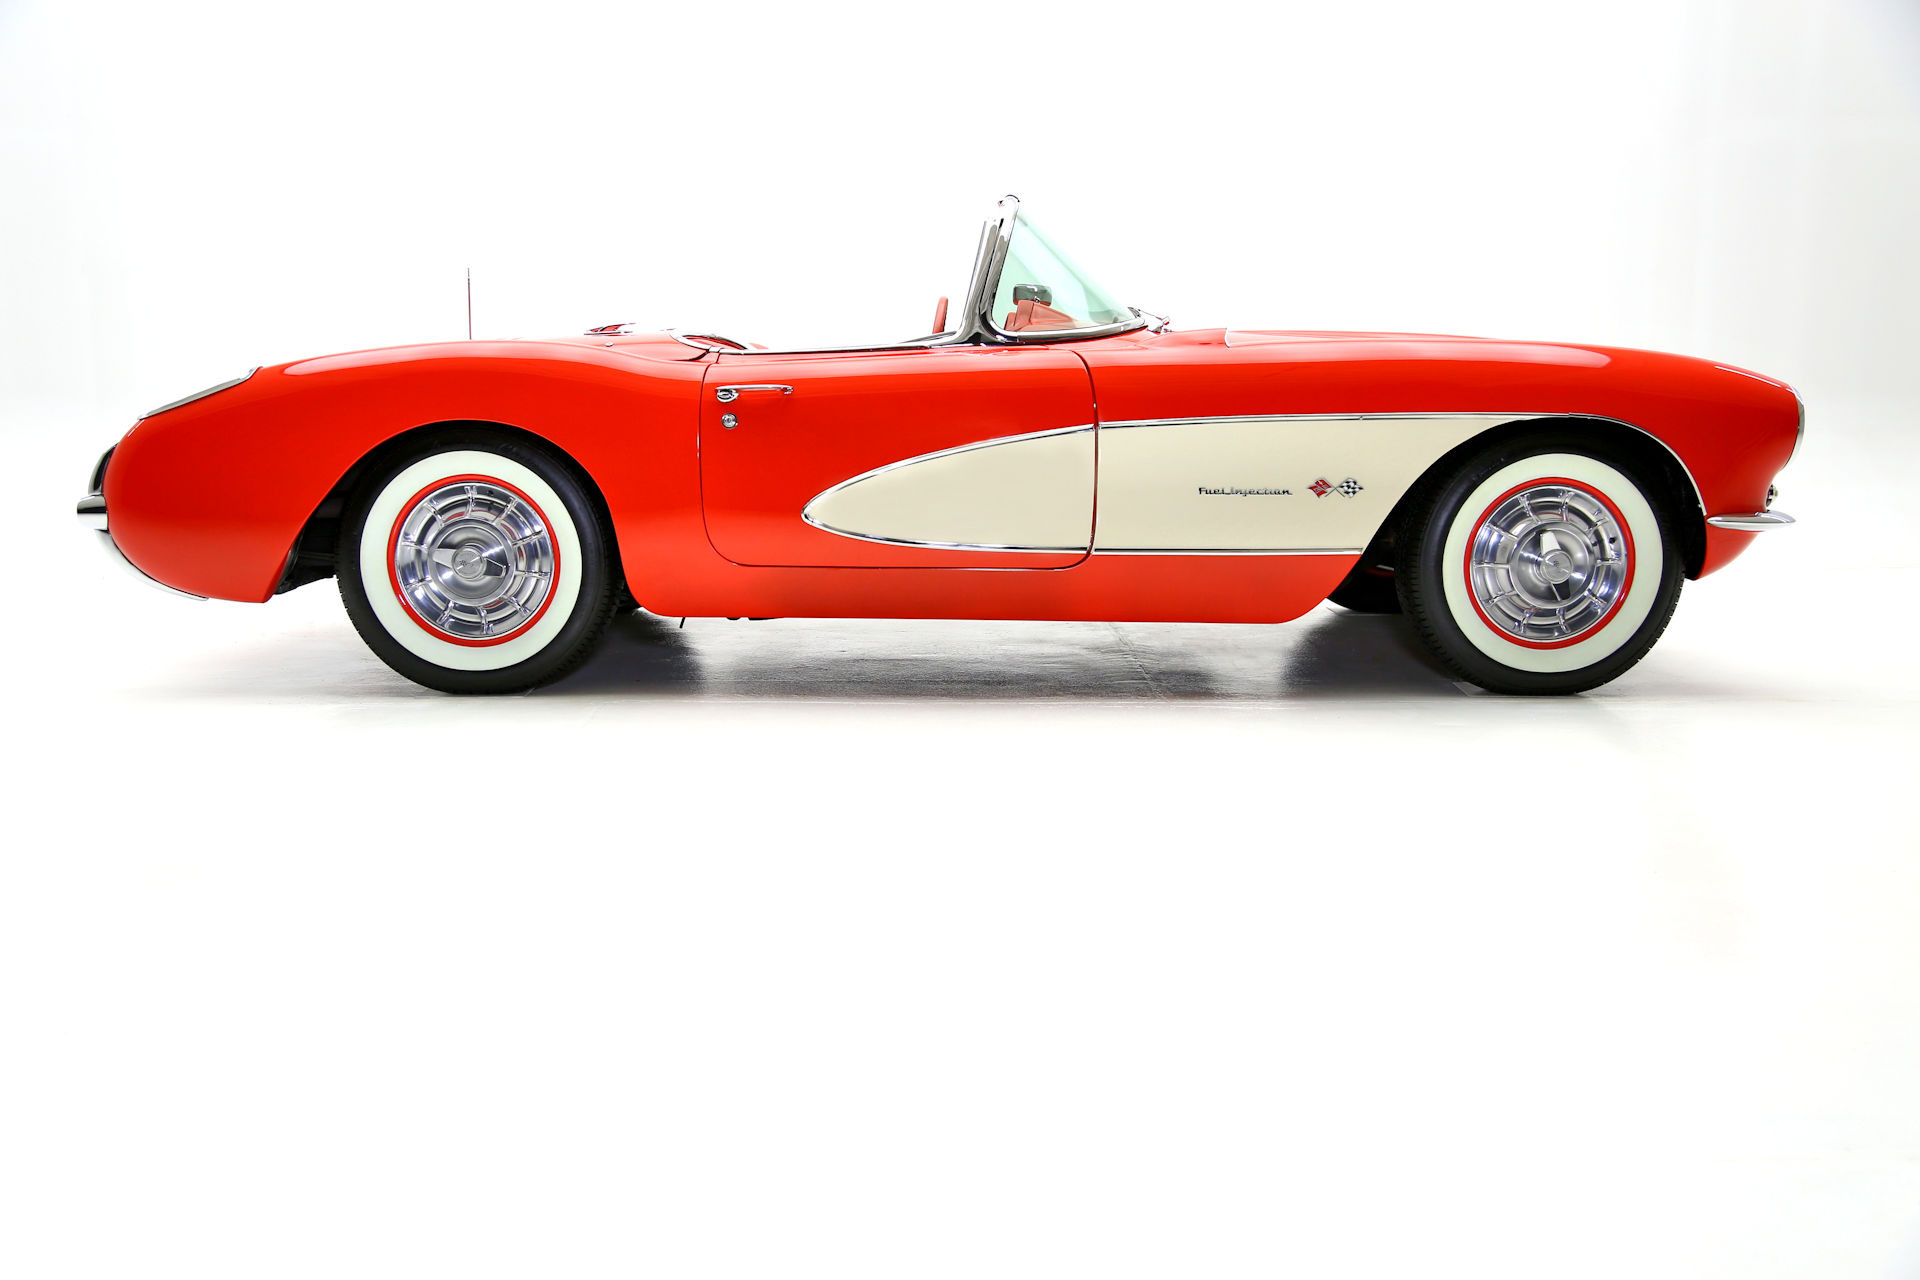 For Sale Used 1957 Chevrolet Corvette Fuelie #s match 283/283 | American Dream Machines Des Moines IA 50309